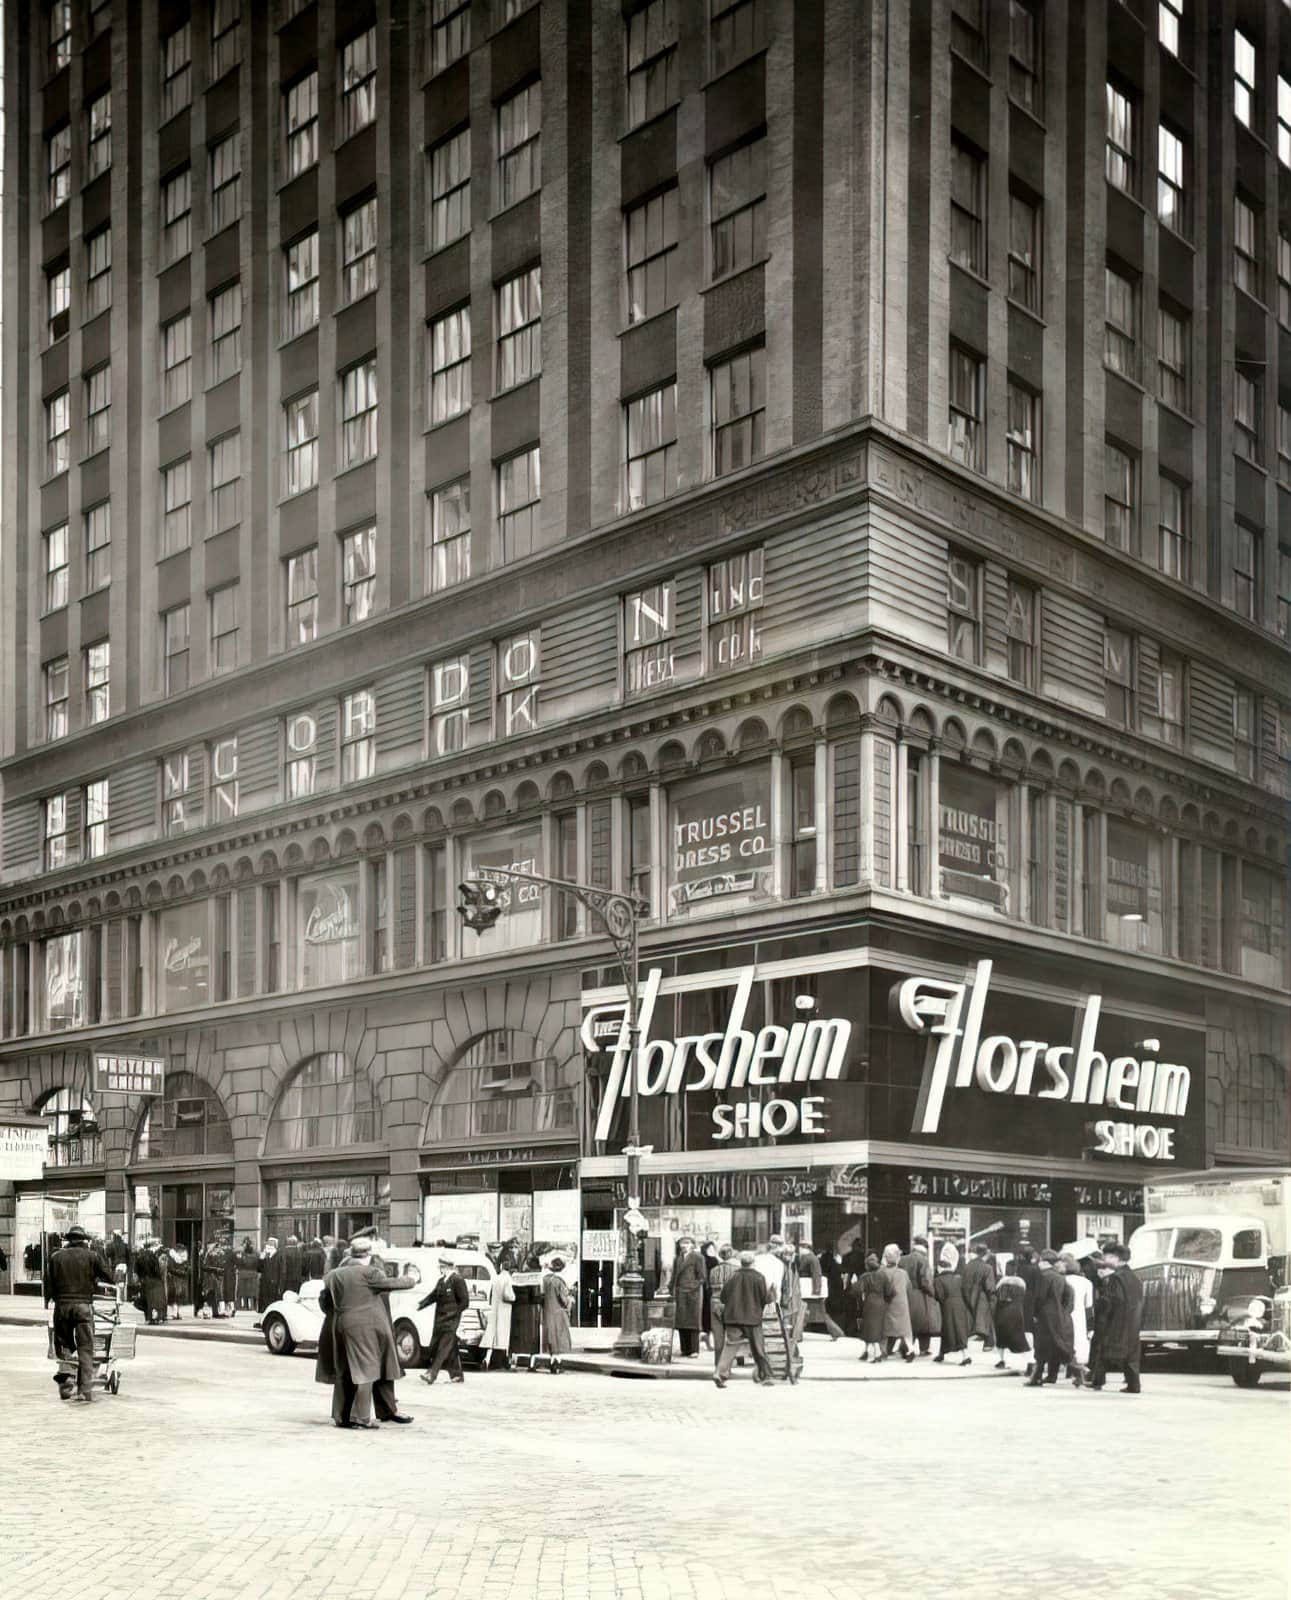 Florsheim Shoes store - NYC - 501 Seventh Avenue - West 37th Street (1930s)